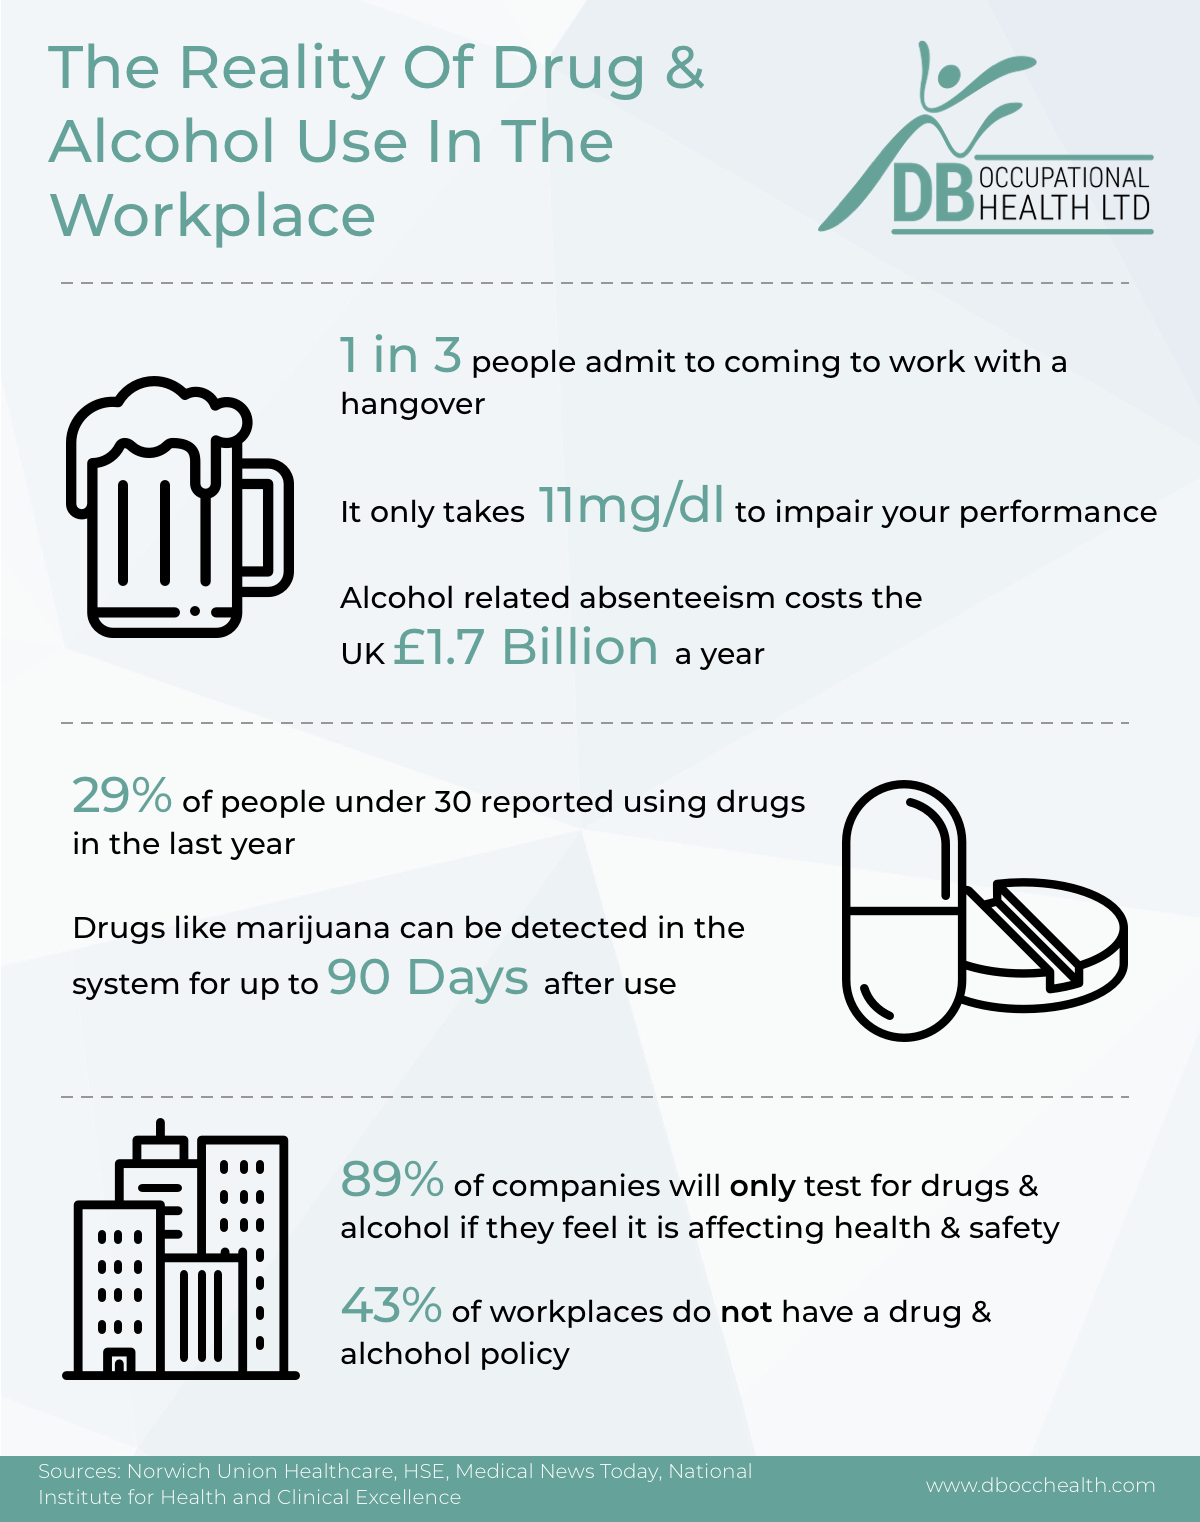 Drug & Alcohol Use In The Workplace Infographic